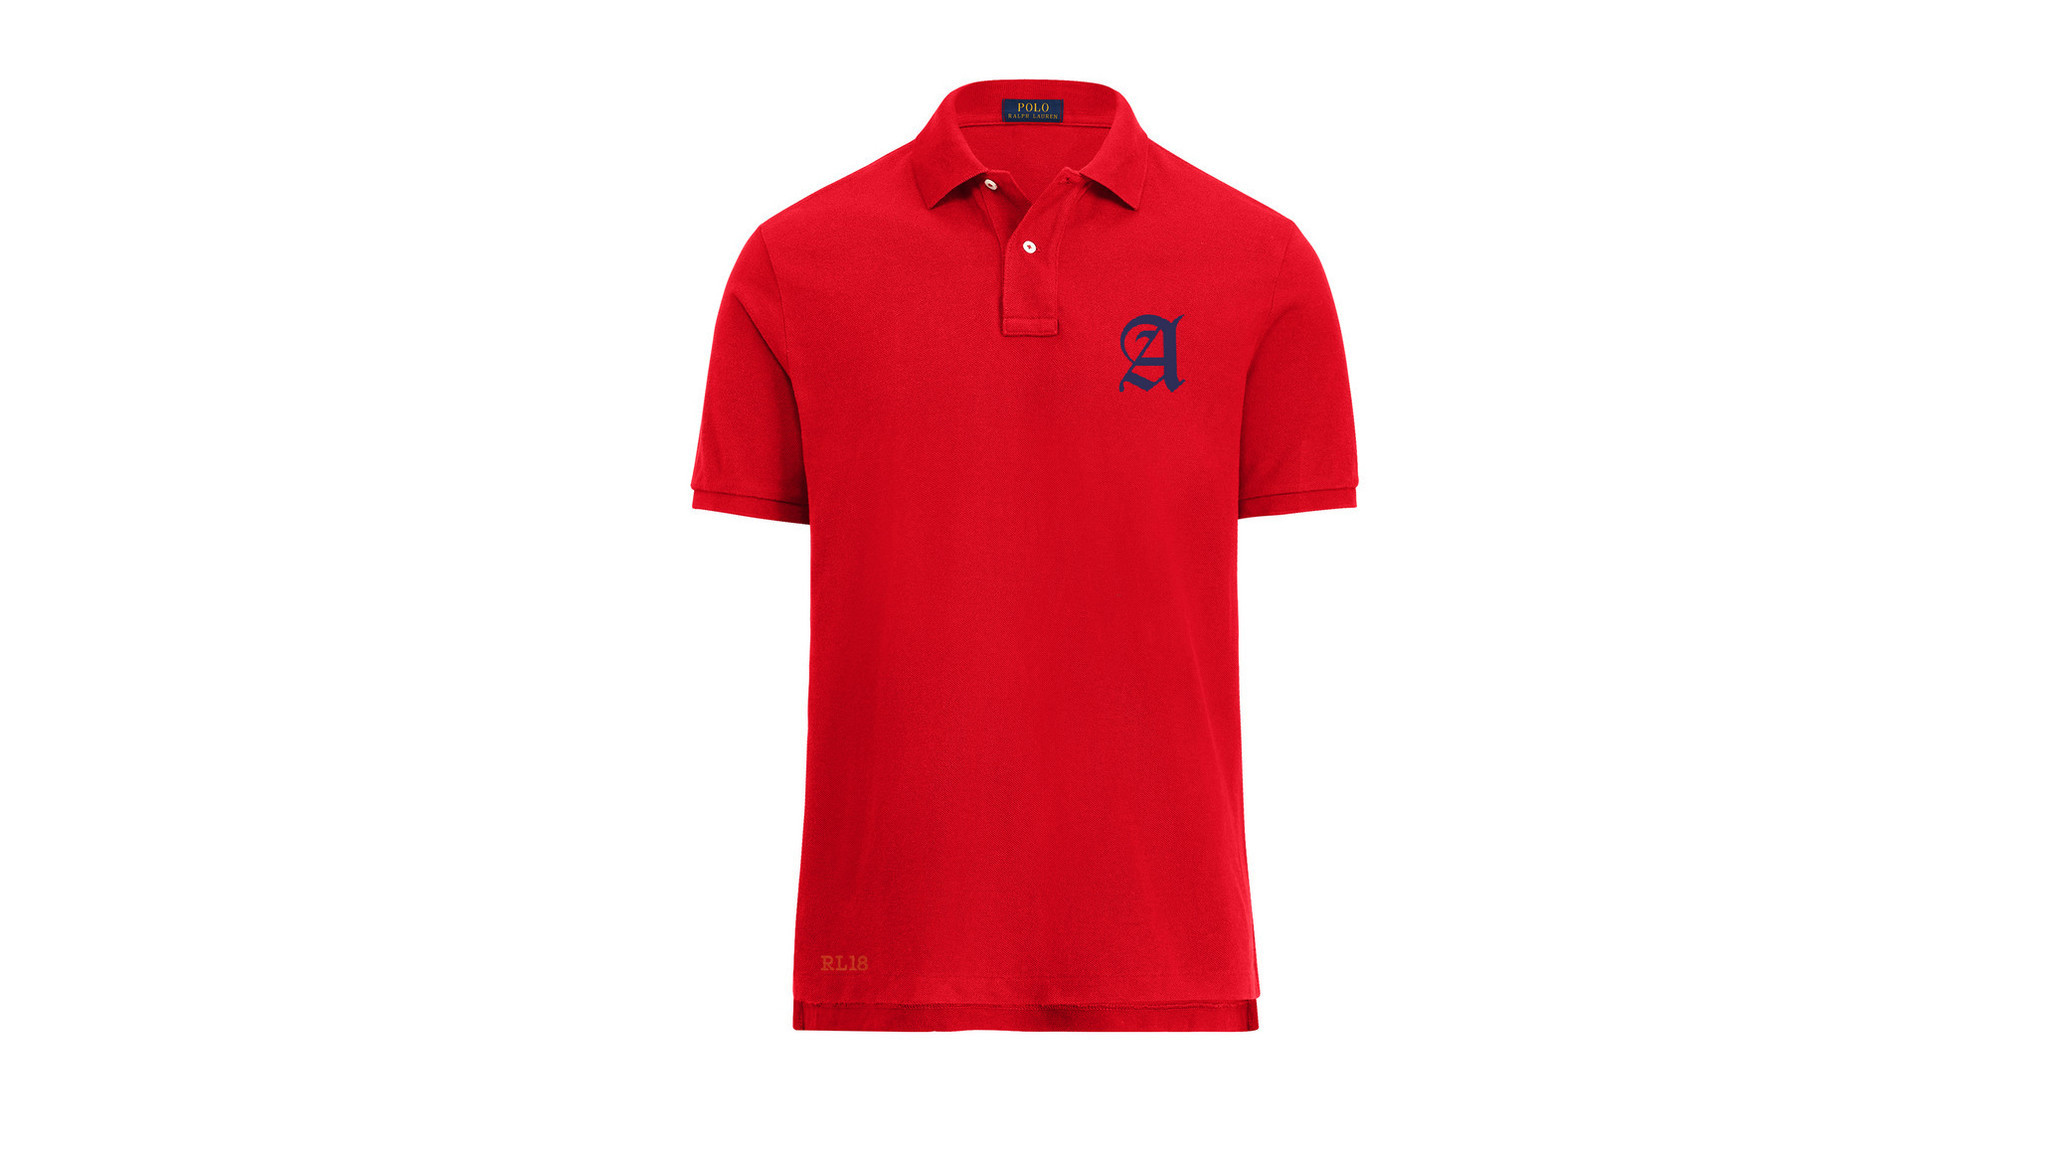 Ralph Lauren polo shirt with embroidered initial, $100, same-day personalization at Polo Ralph Laure